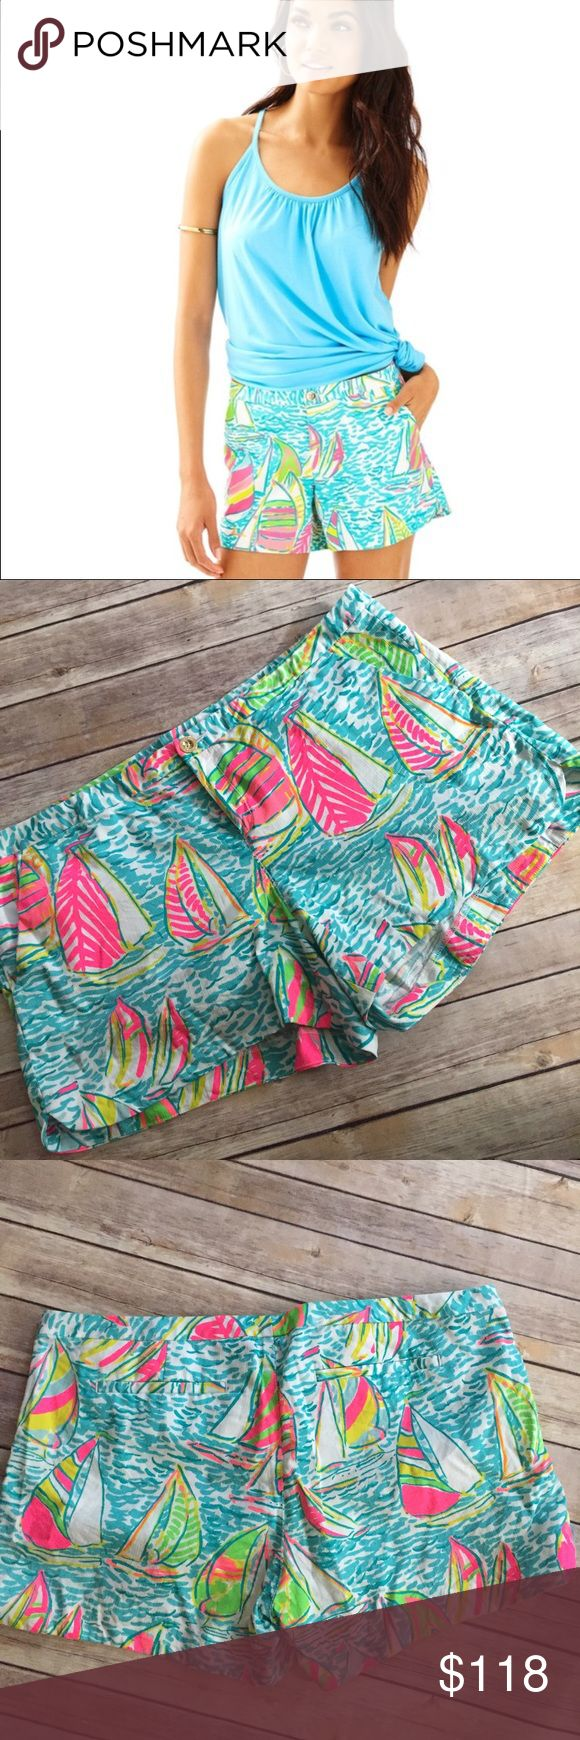 "Size 14 You Gotta Regatta Addie 4"" Short Size 14 You Gotta Regatta Addie 4"" Short by Lilly Pulitzer. EUC. Out of stock. Super cute shorts!!! Essential preppy girl style. Exact measurements pictured. No trades price firm Lilly Pulitzer Shorts"